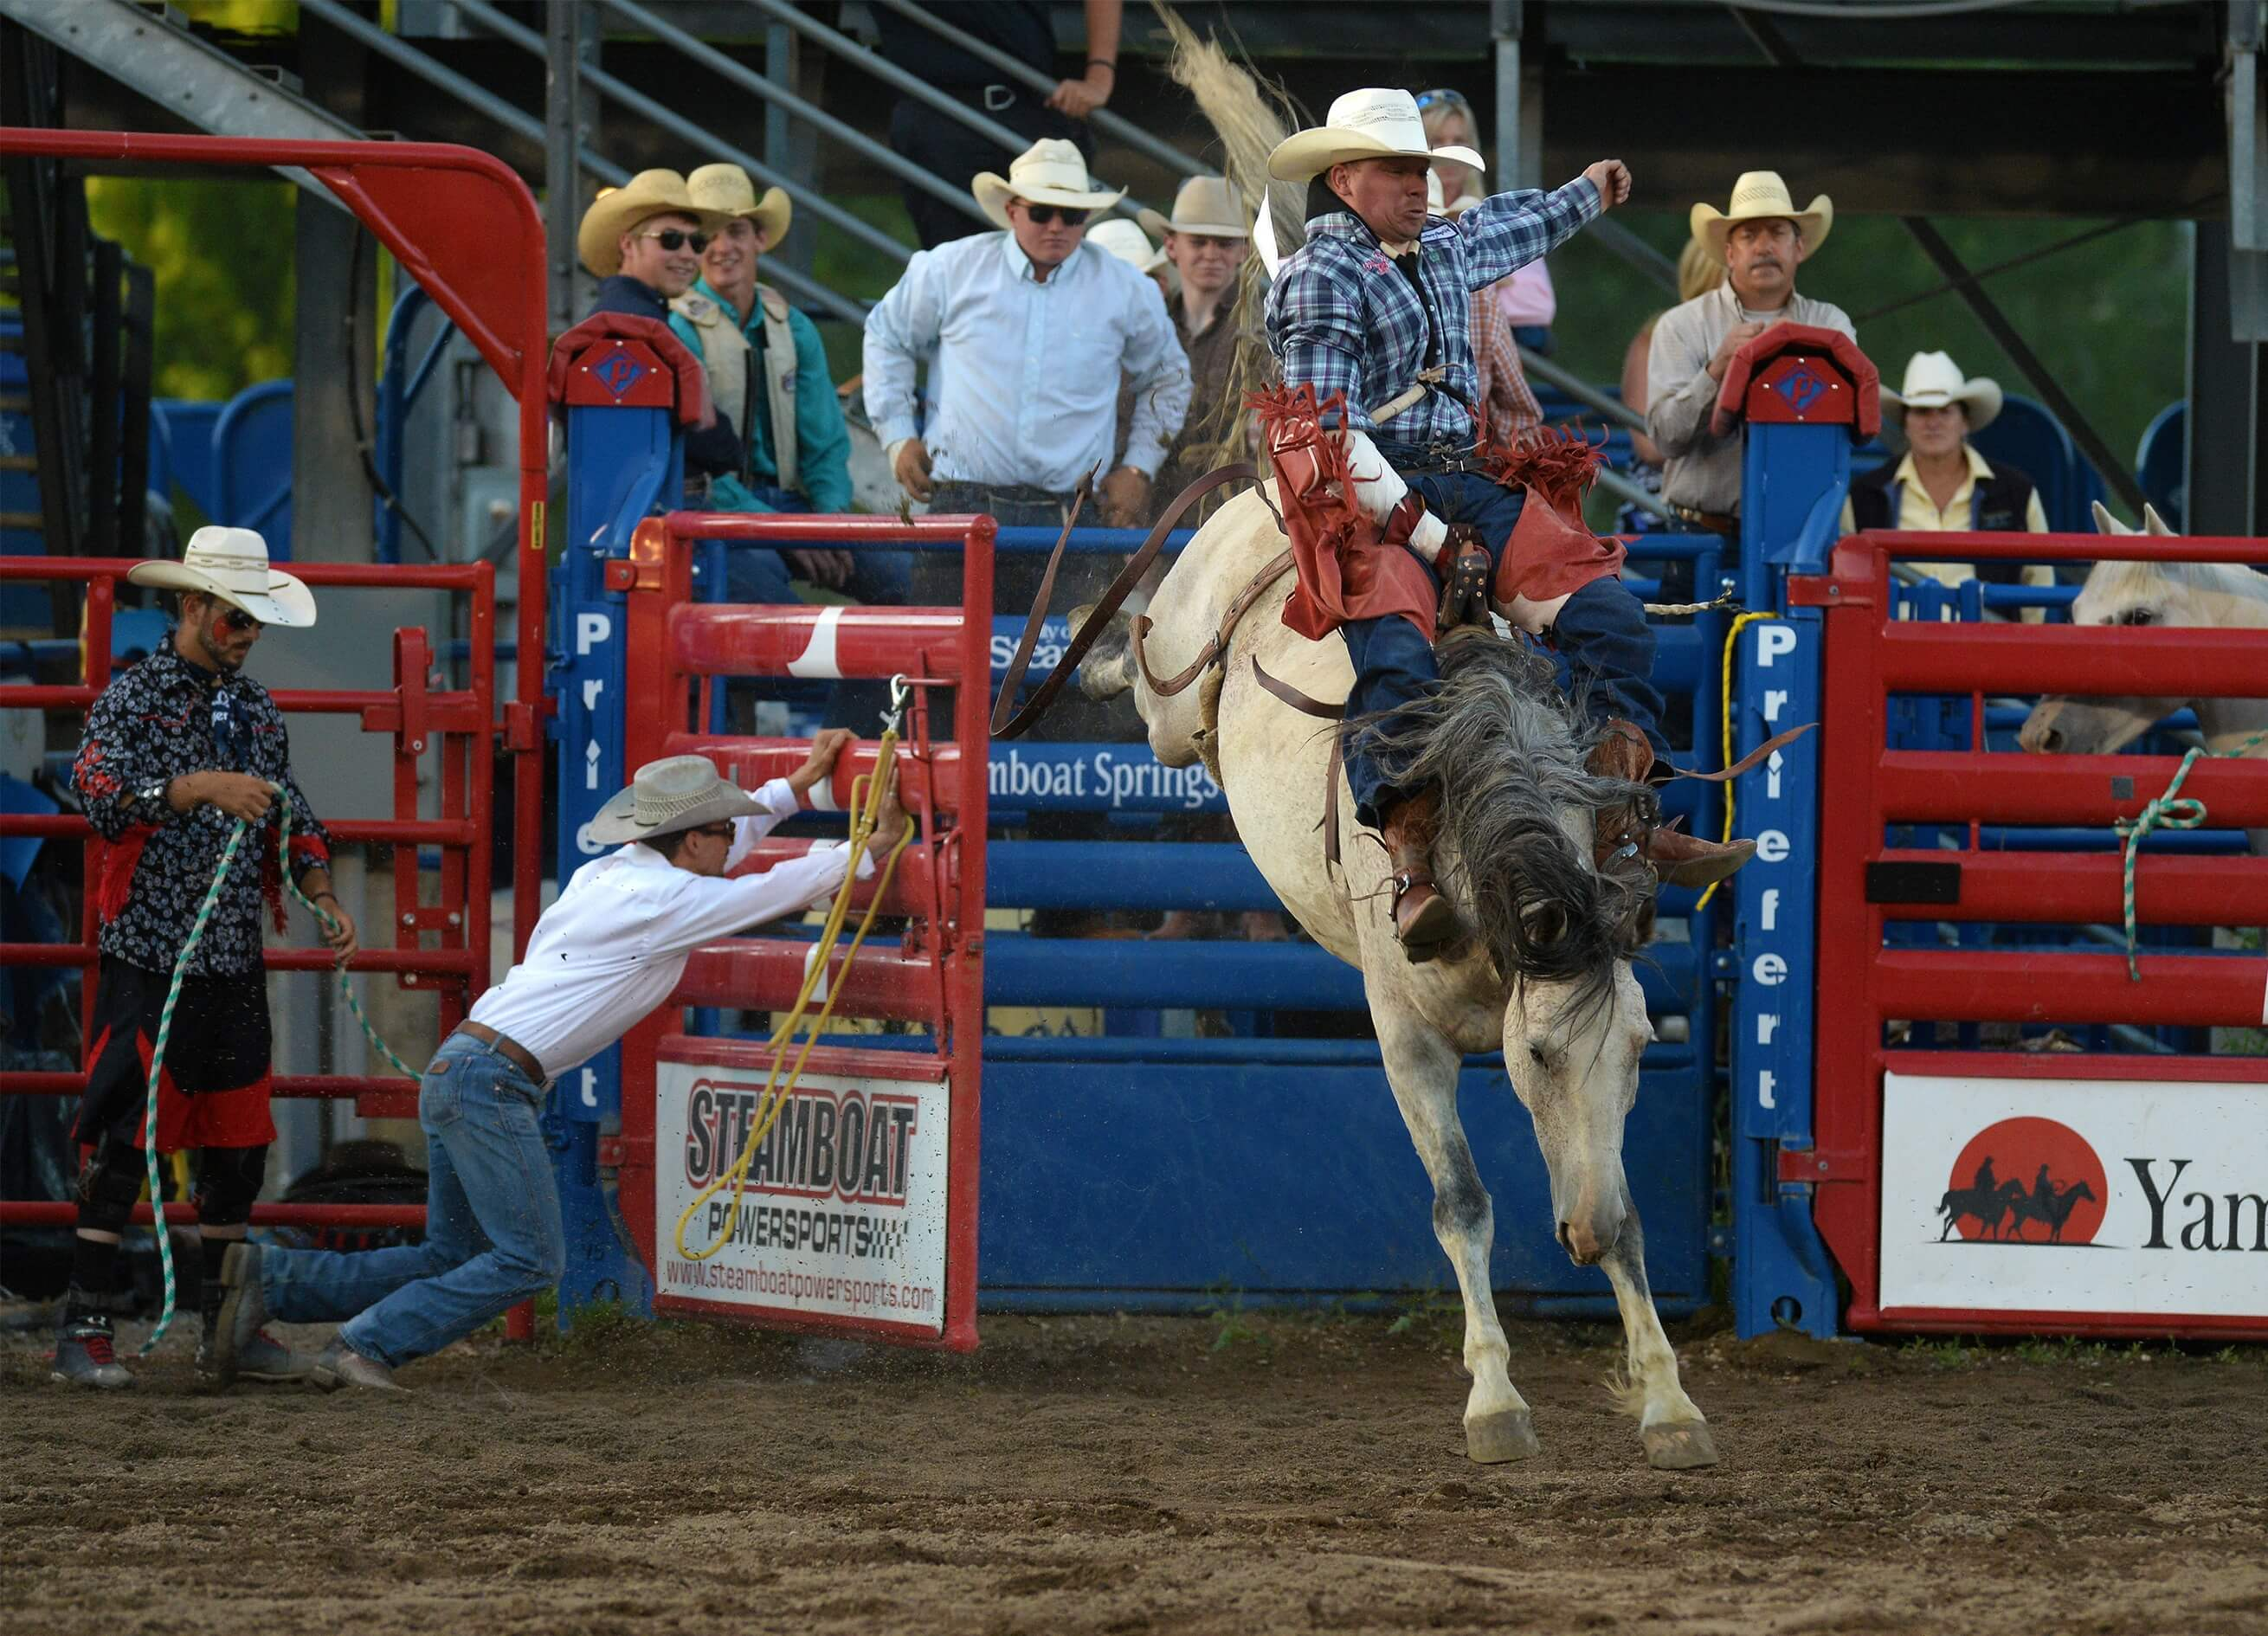 SteamboatResort LarryPierce Rodeo